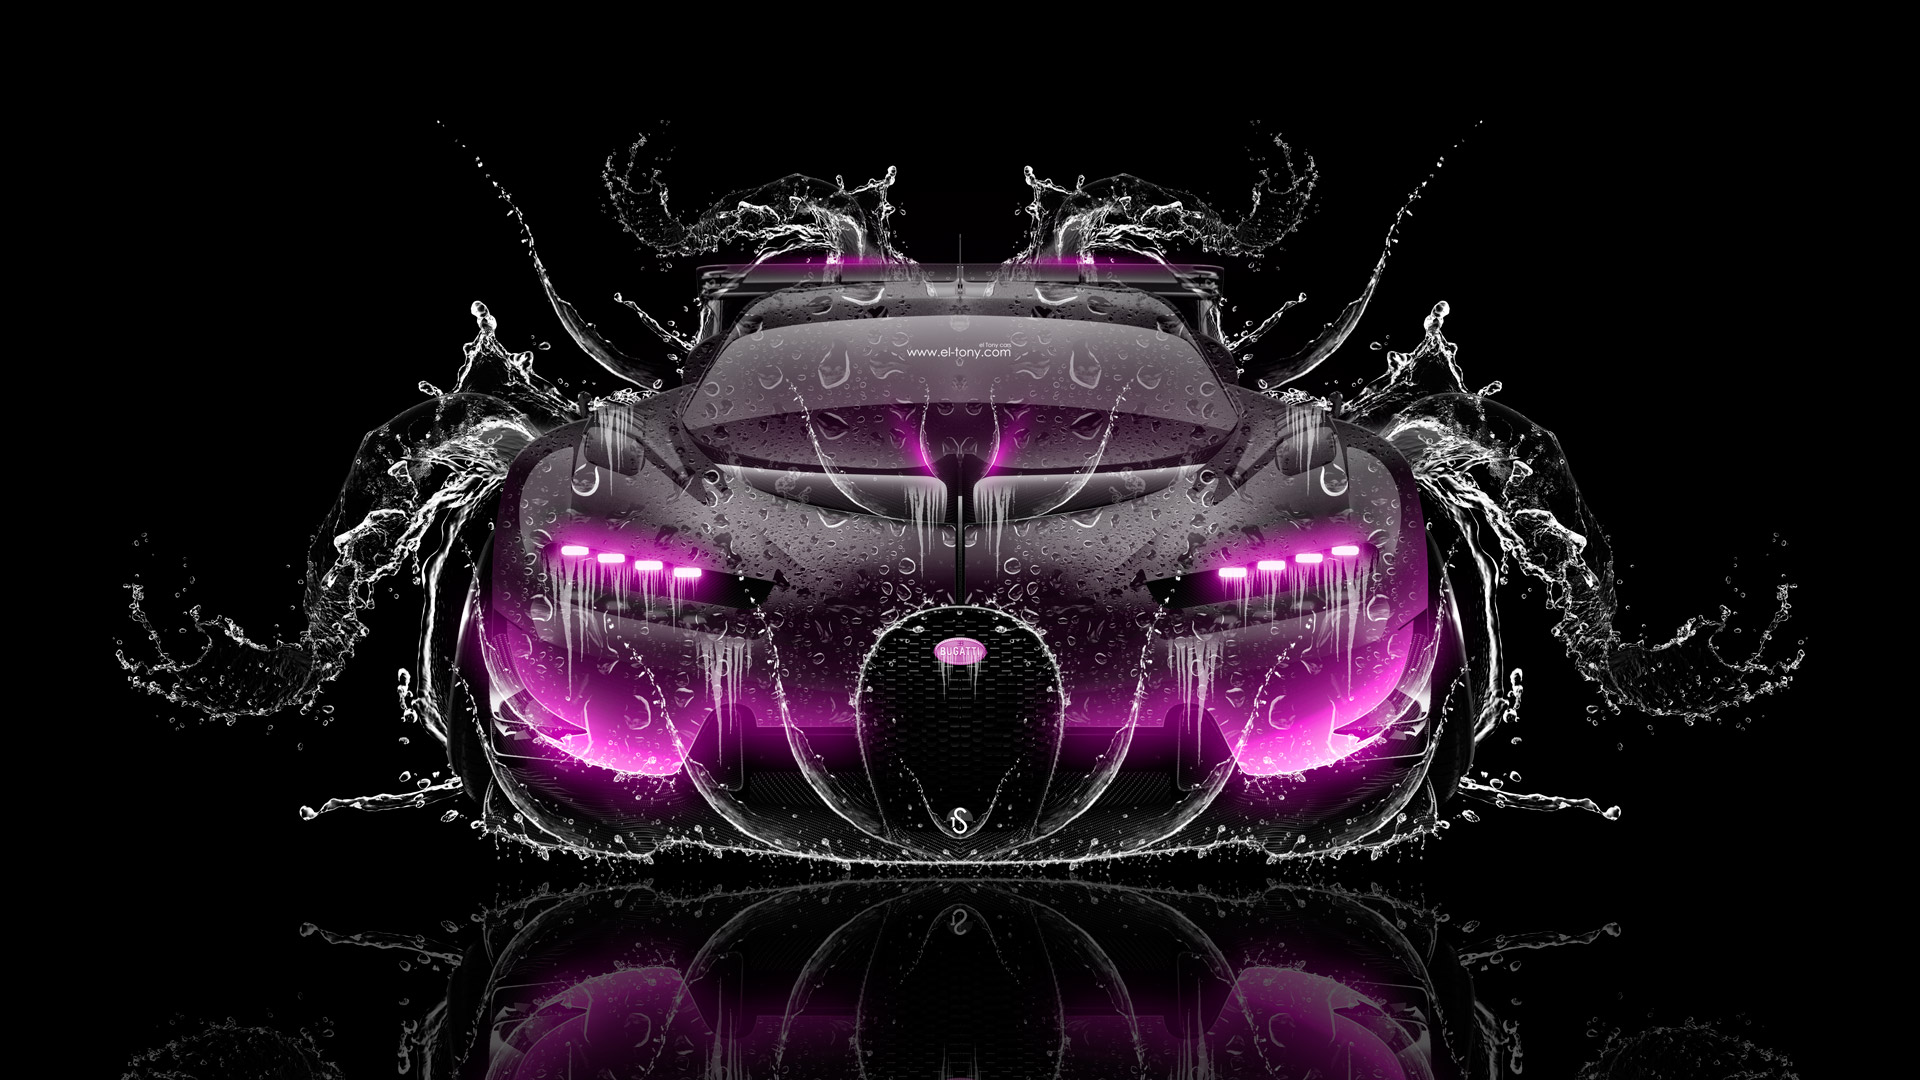 Bugatti-Vision-Gran-Turismo-FrontUp-Super-Water-Splashes-Car-2016-Pink-Black-Colors-HD-Wallpapers-design-by-Tony-Kokhan-www.el-tony.com-image Modern Pink Bugatti Veyron Katie Price Cars Trend